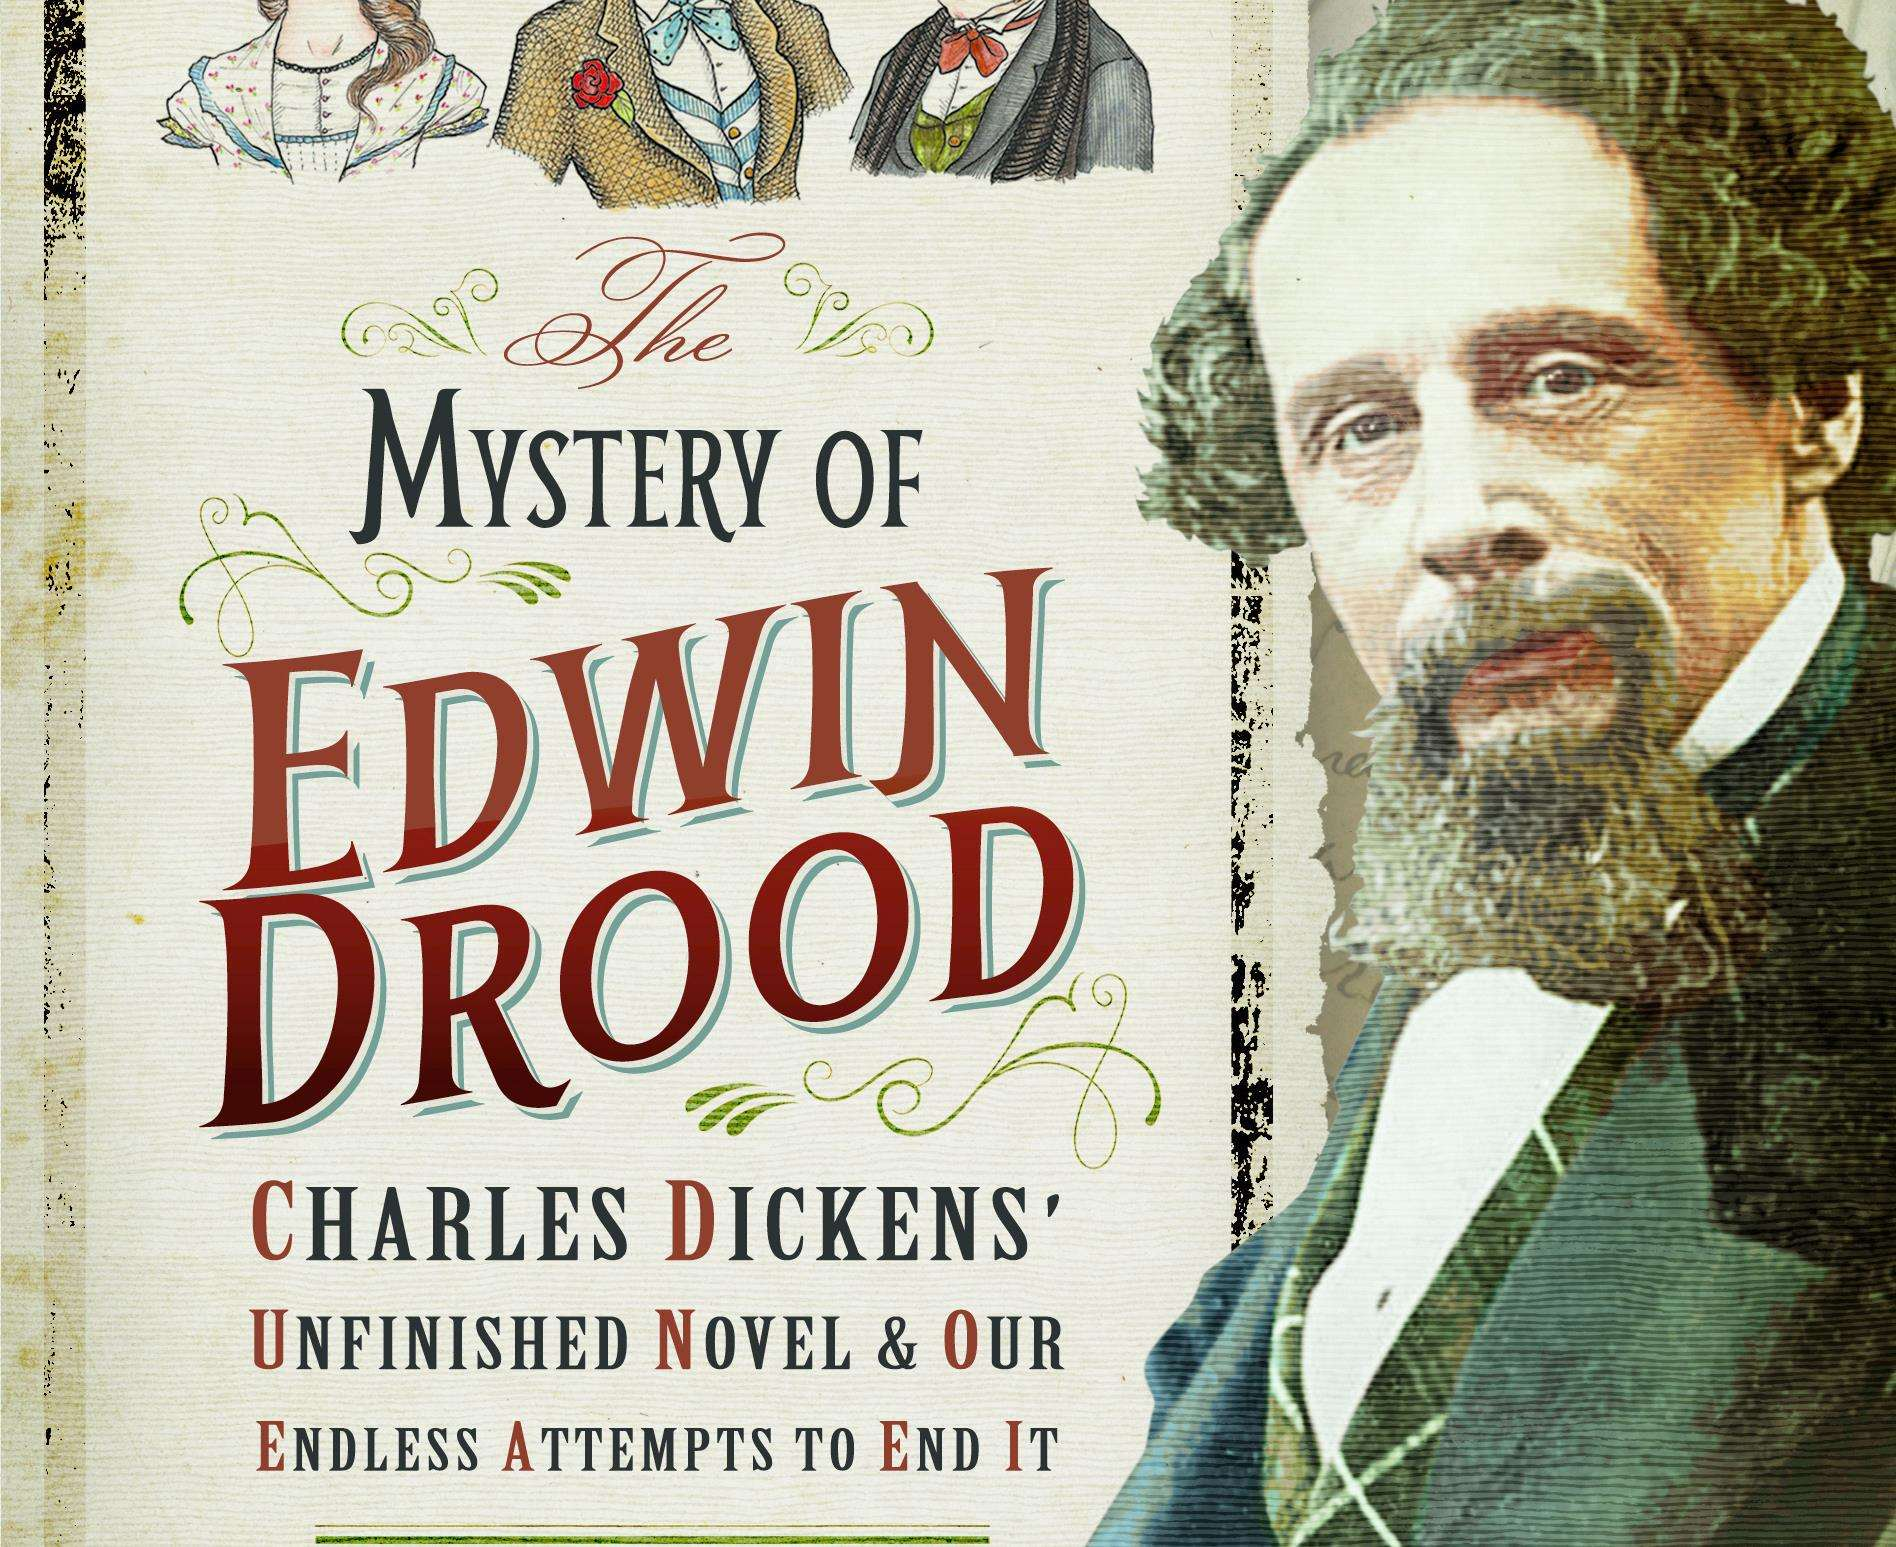 The book puts together the many ideas of how Charles Dicken's novel would have ended. (3424476)